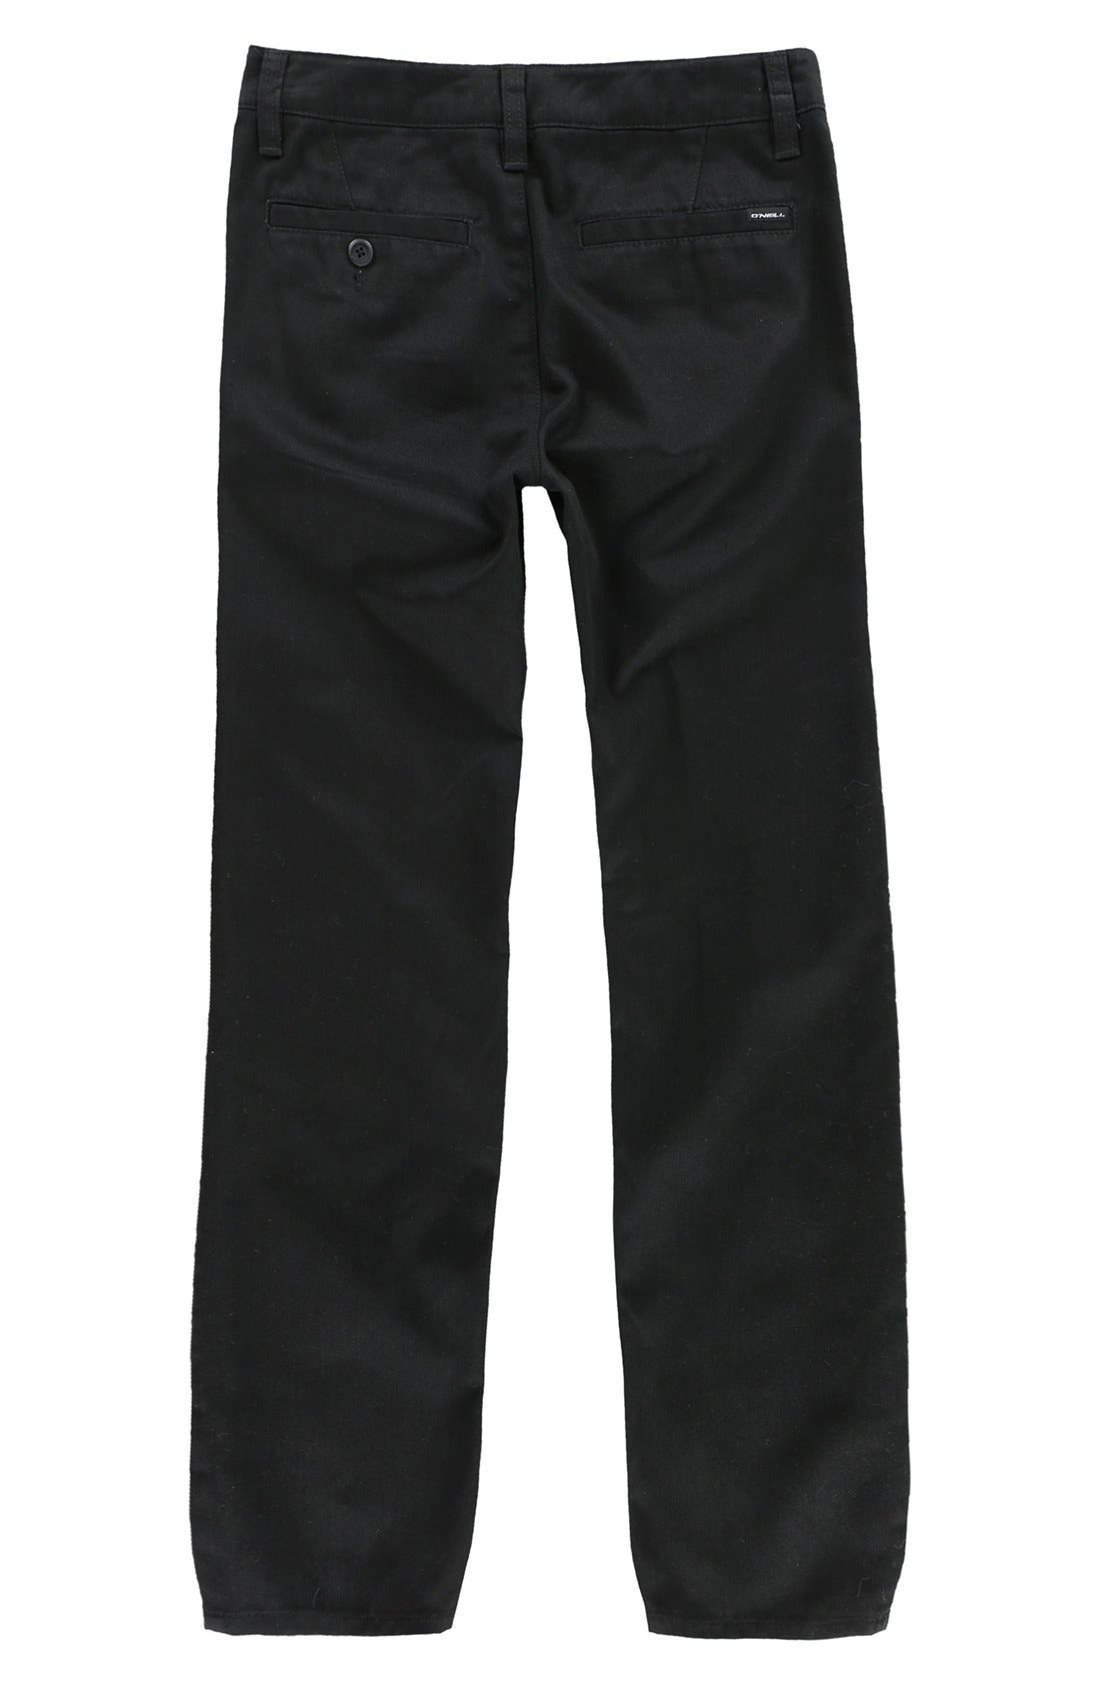 Contact Straight Leg Twill Pants,                             Alternate thumbnail 2, color,                             001